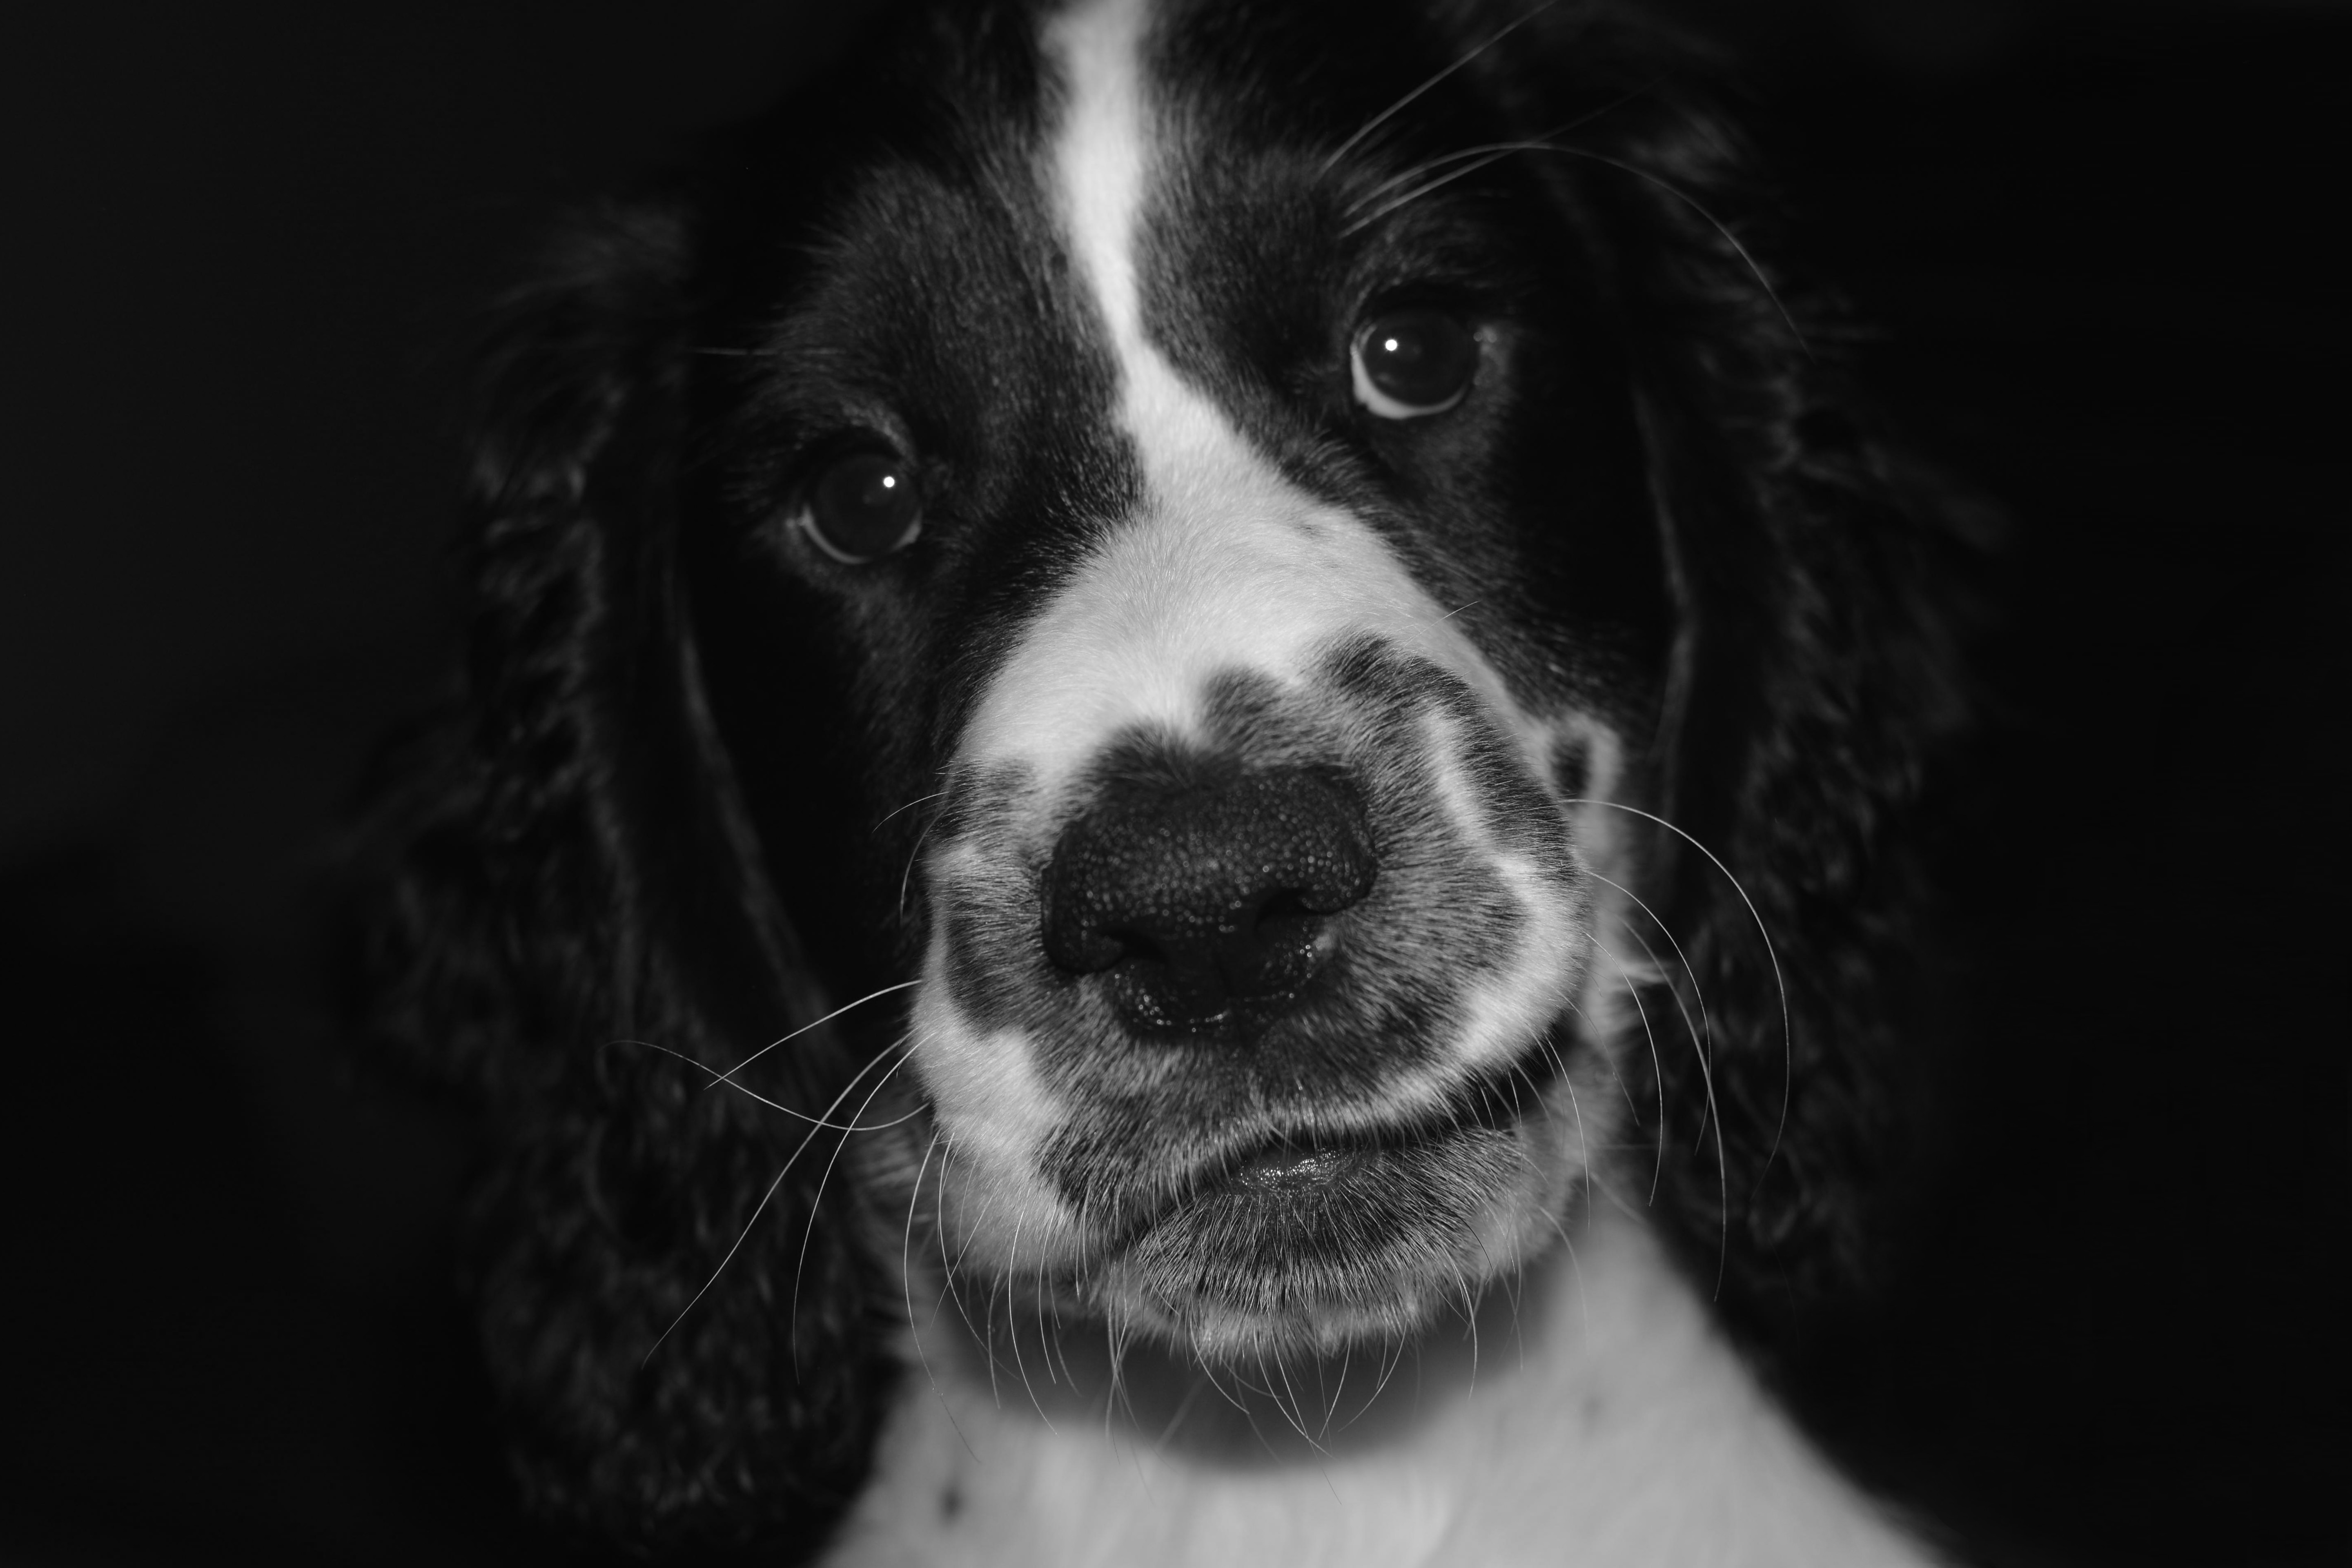 122472 download wallpaper Animals, Springer Spaniel, Dog, Bw, Chb, Spotted, Spotty, Pet screensavers and pictures for free